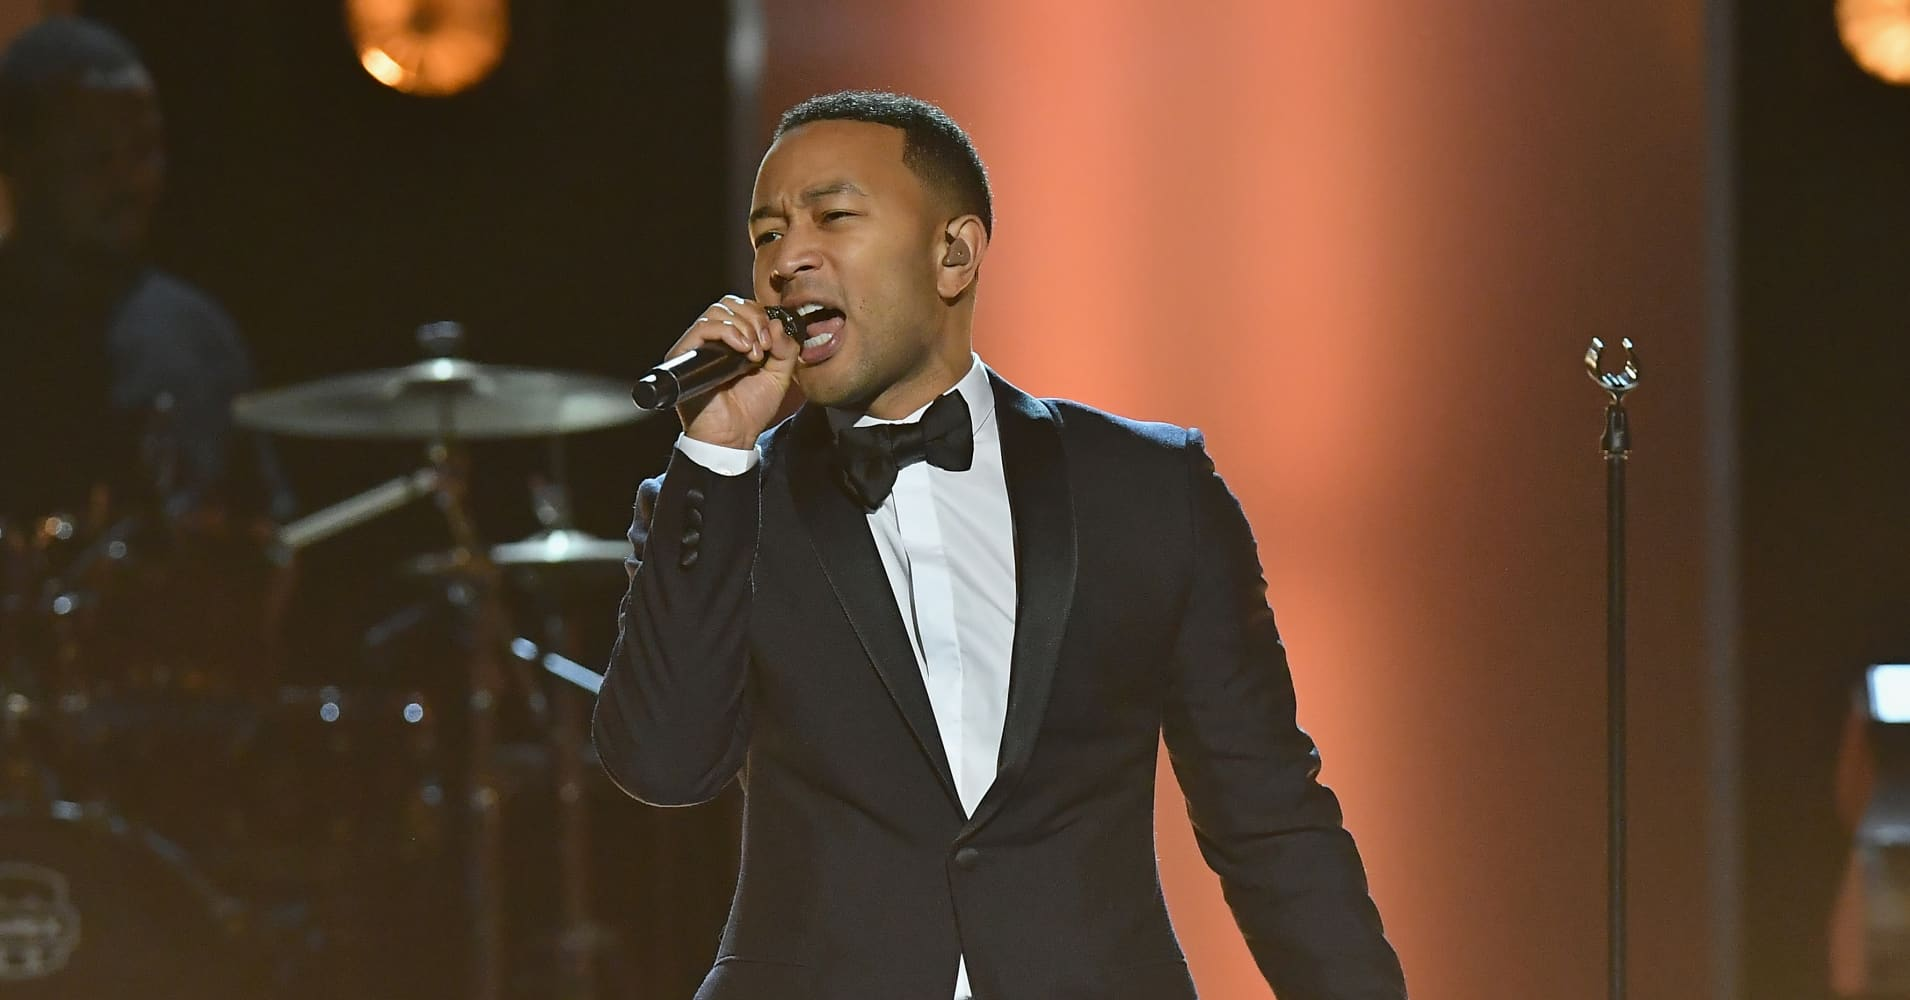 Singer John Legend performs onstage at the 48th NAACP Image Awards on February 11, 2017.